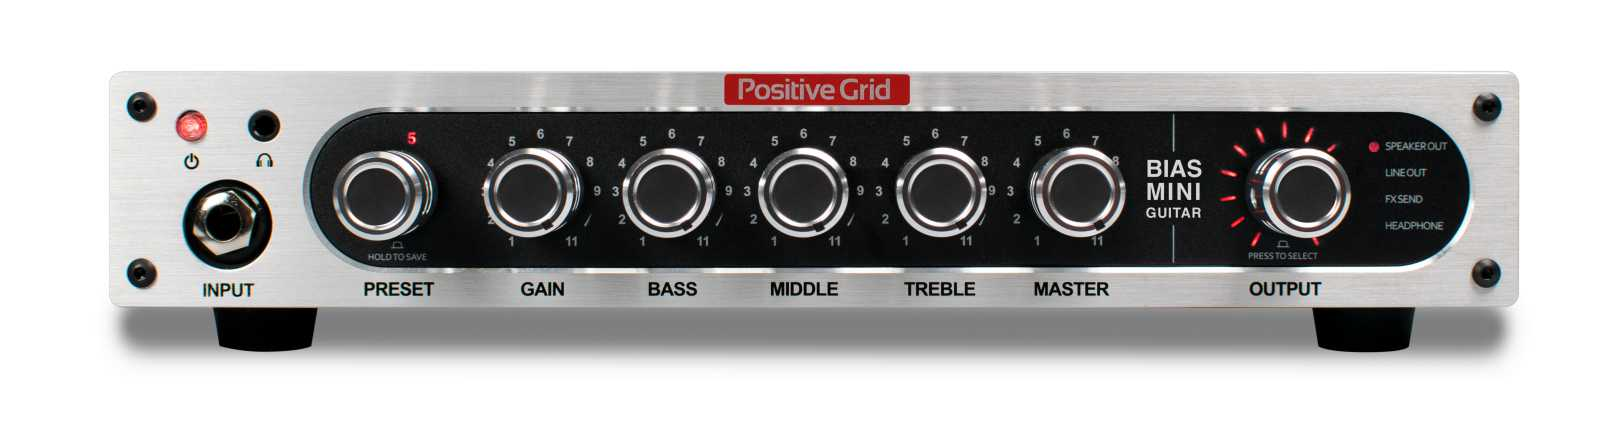 POSITIVE GRID Bias Mini Head Gitarre PGABMG, 300 Watt